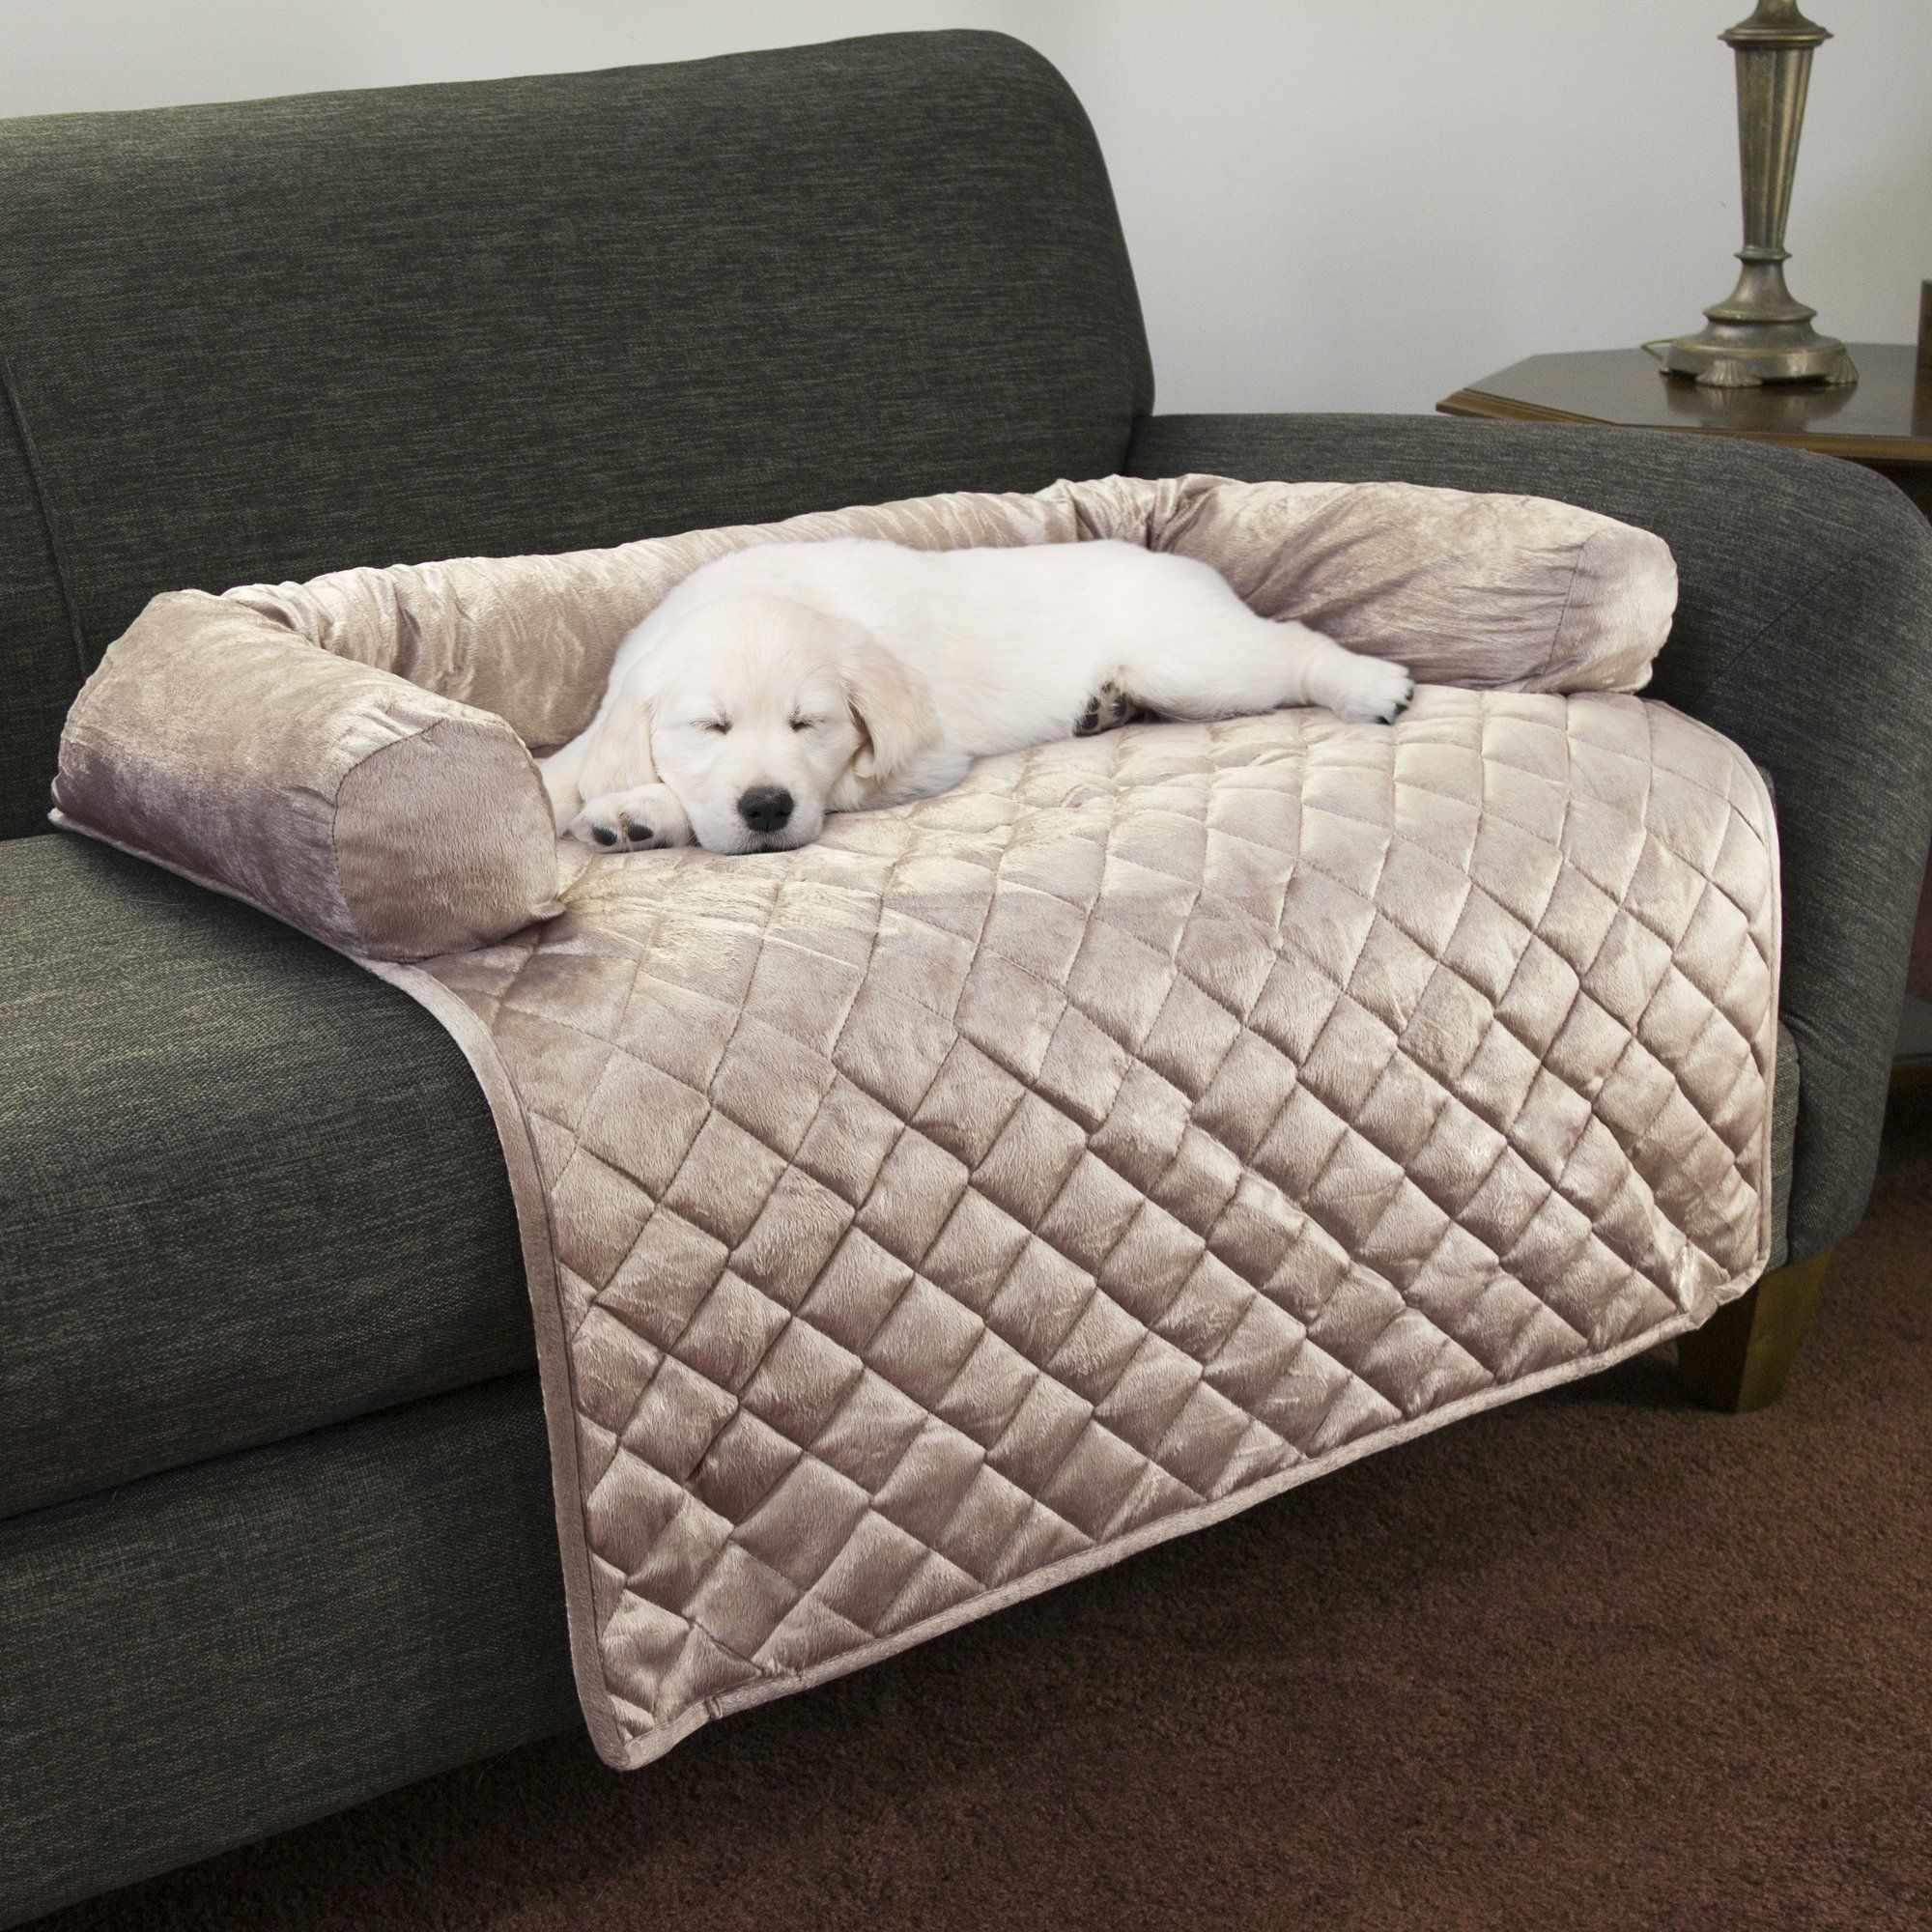 Petmaker Furniture Protector Pet Cover With Bolster In Beige For